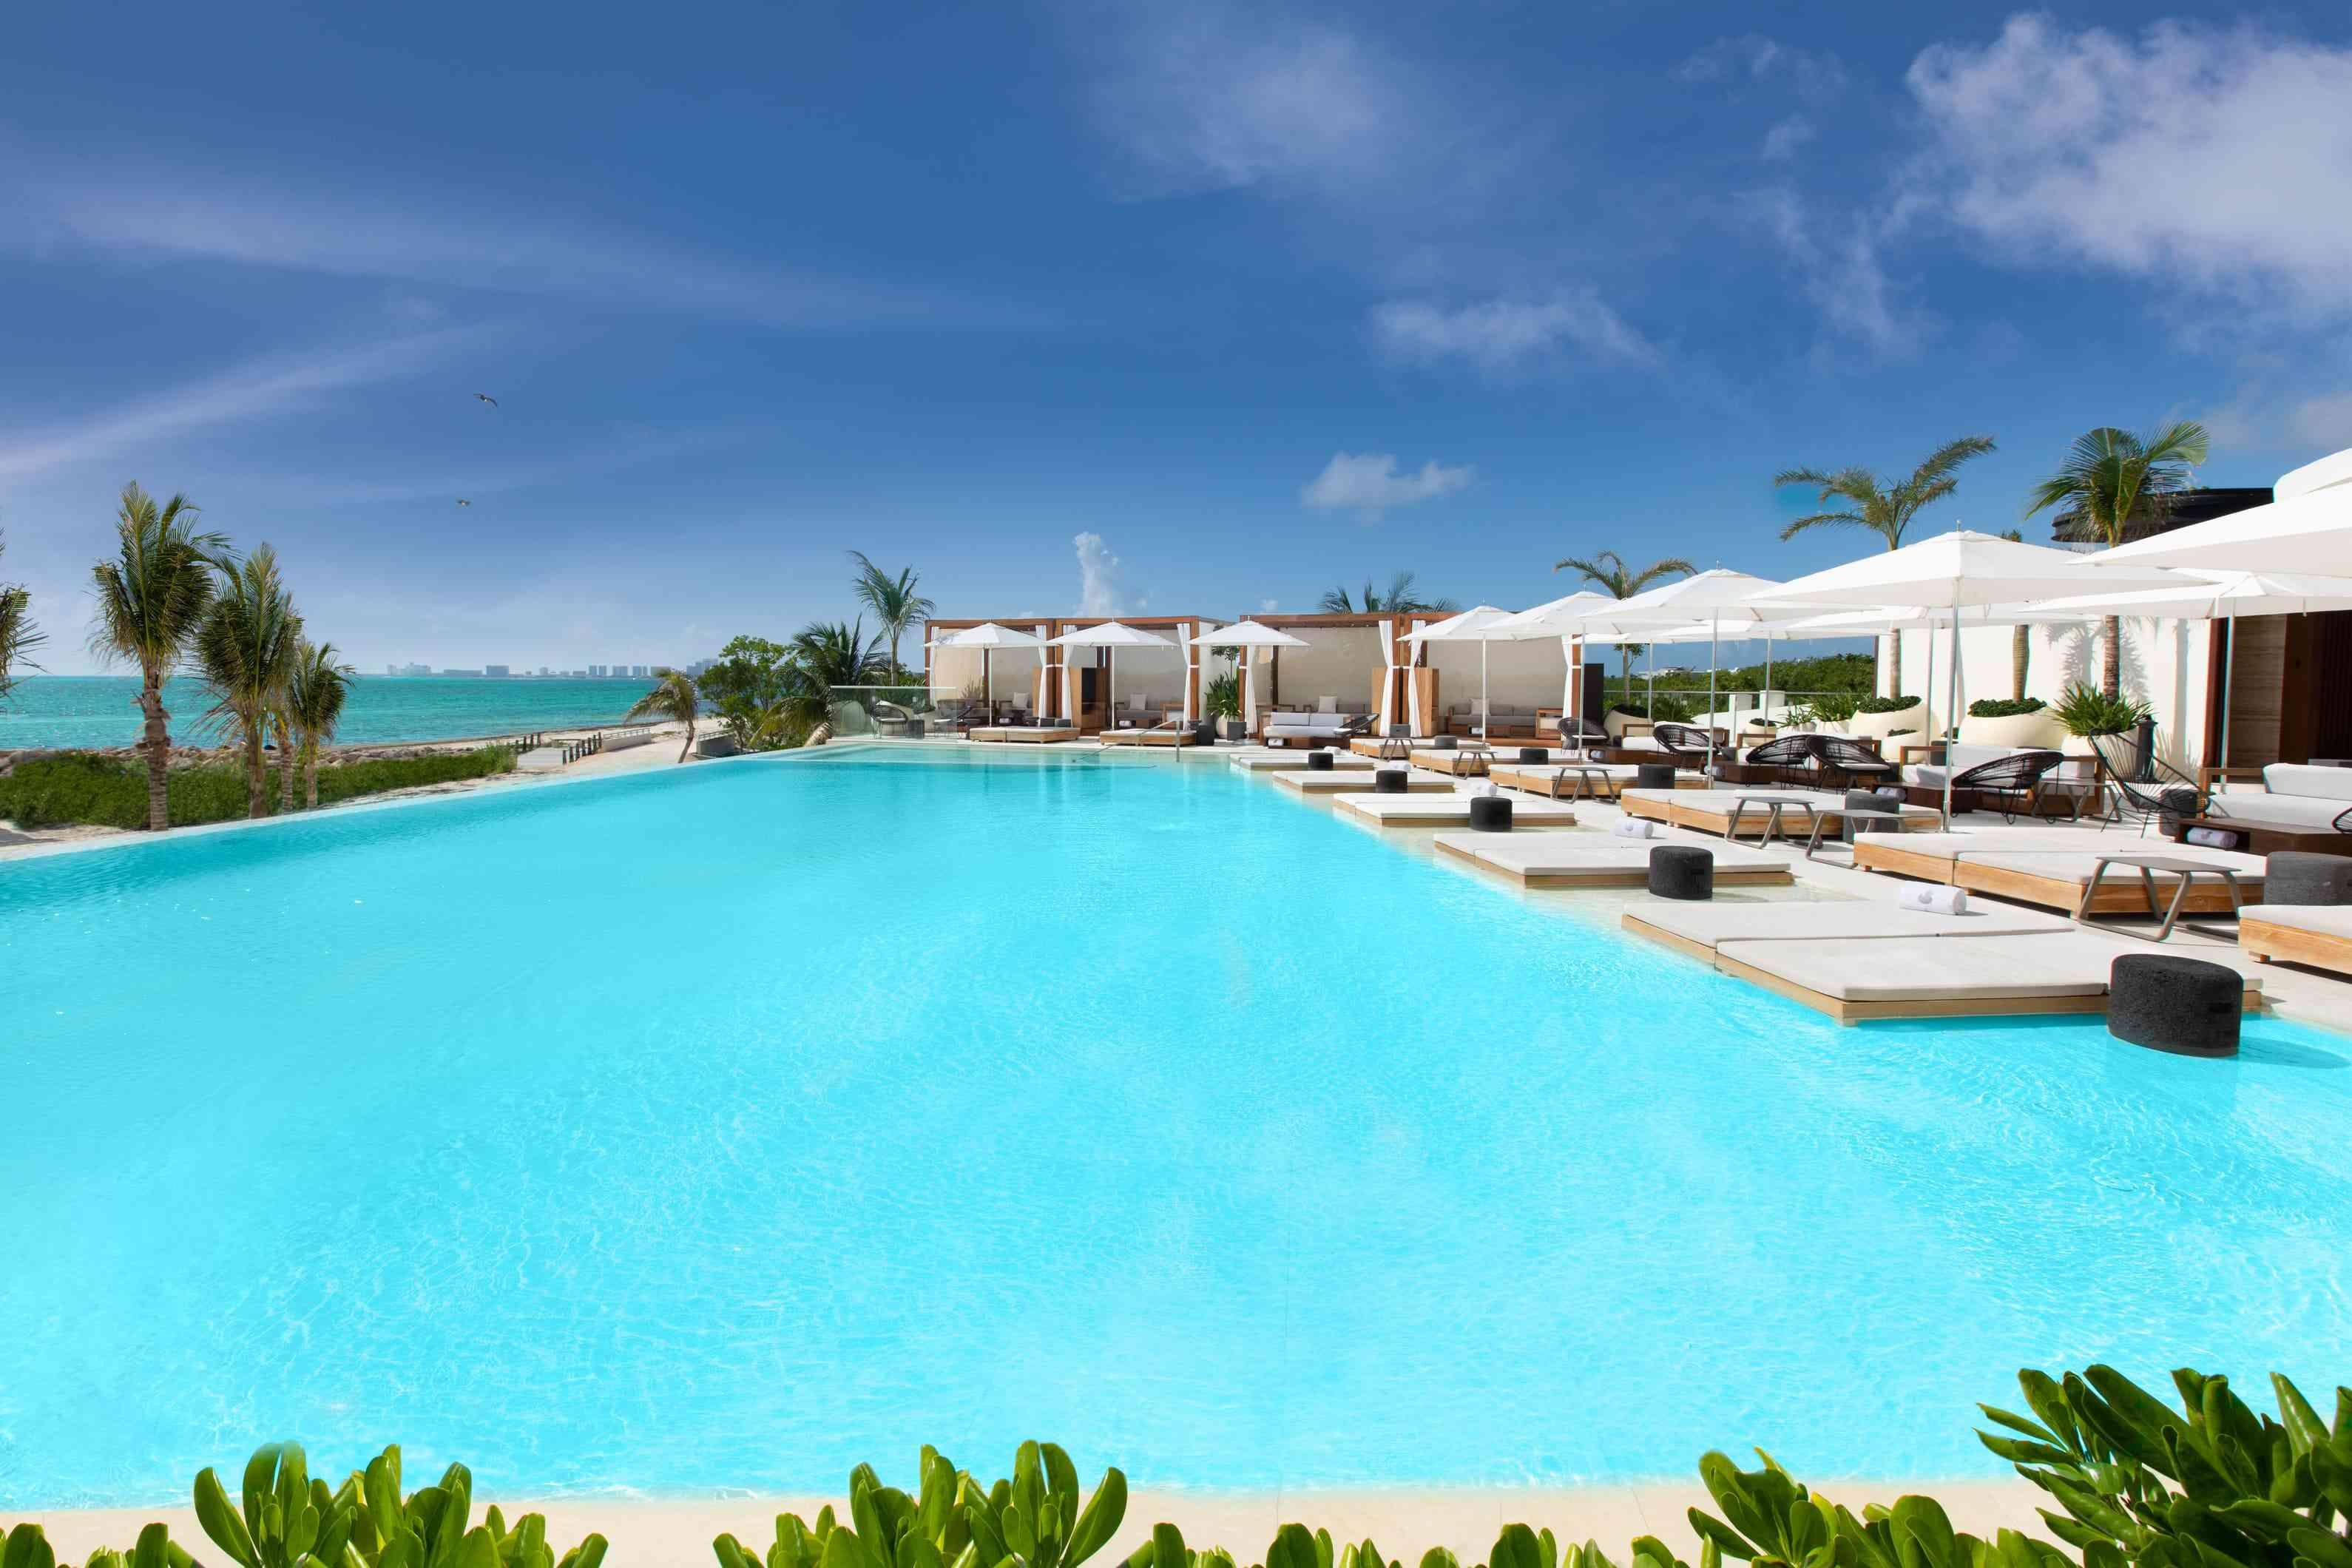 Clear blue pool with cabanas and tanning area along the side